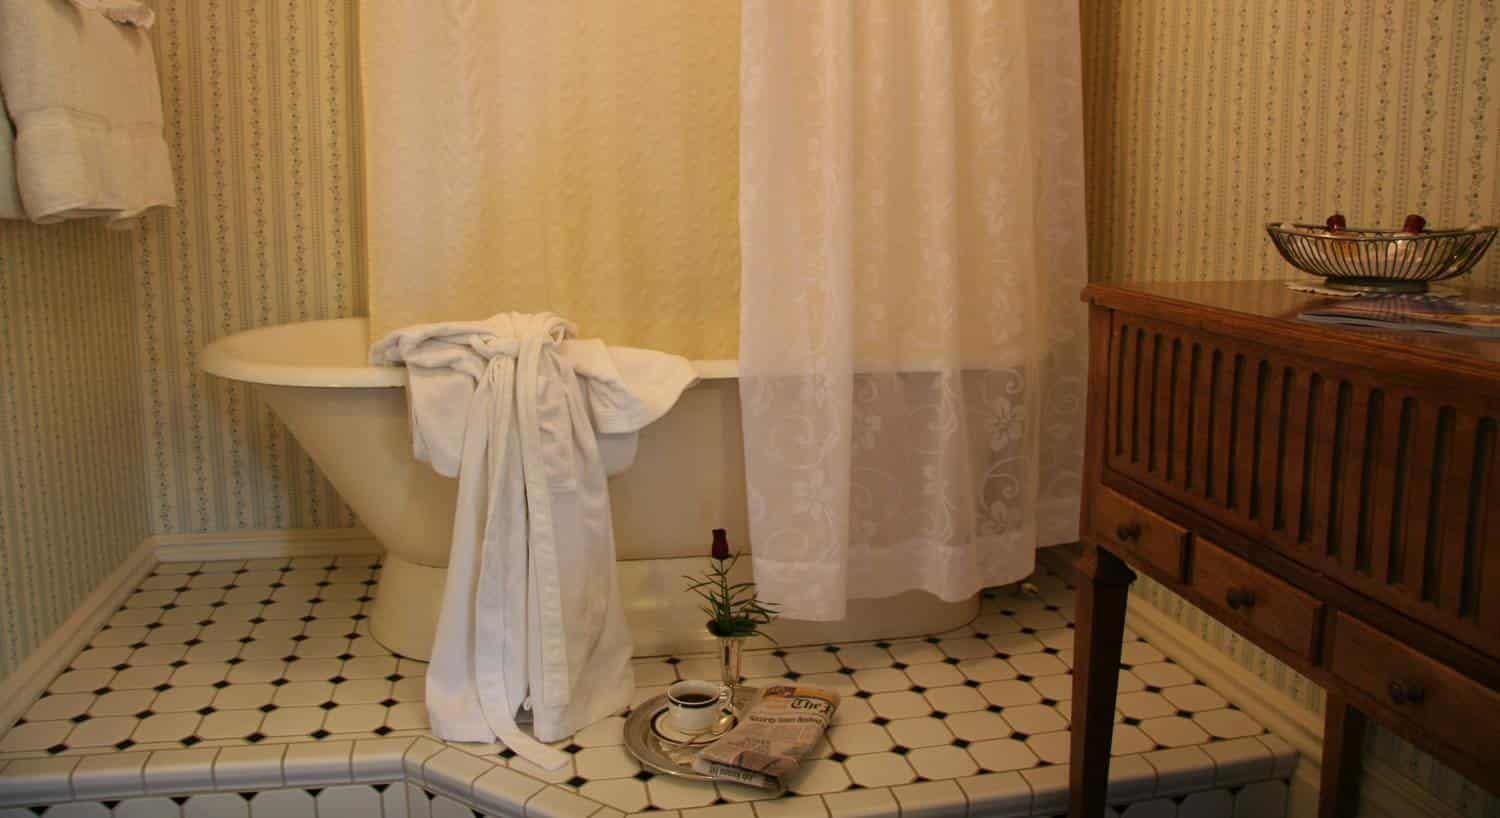 Edith guest bath with white freestanding tub, white shower curtain and wood vanity